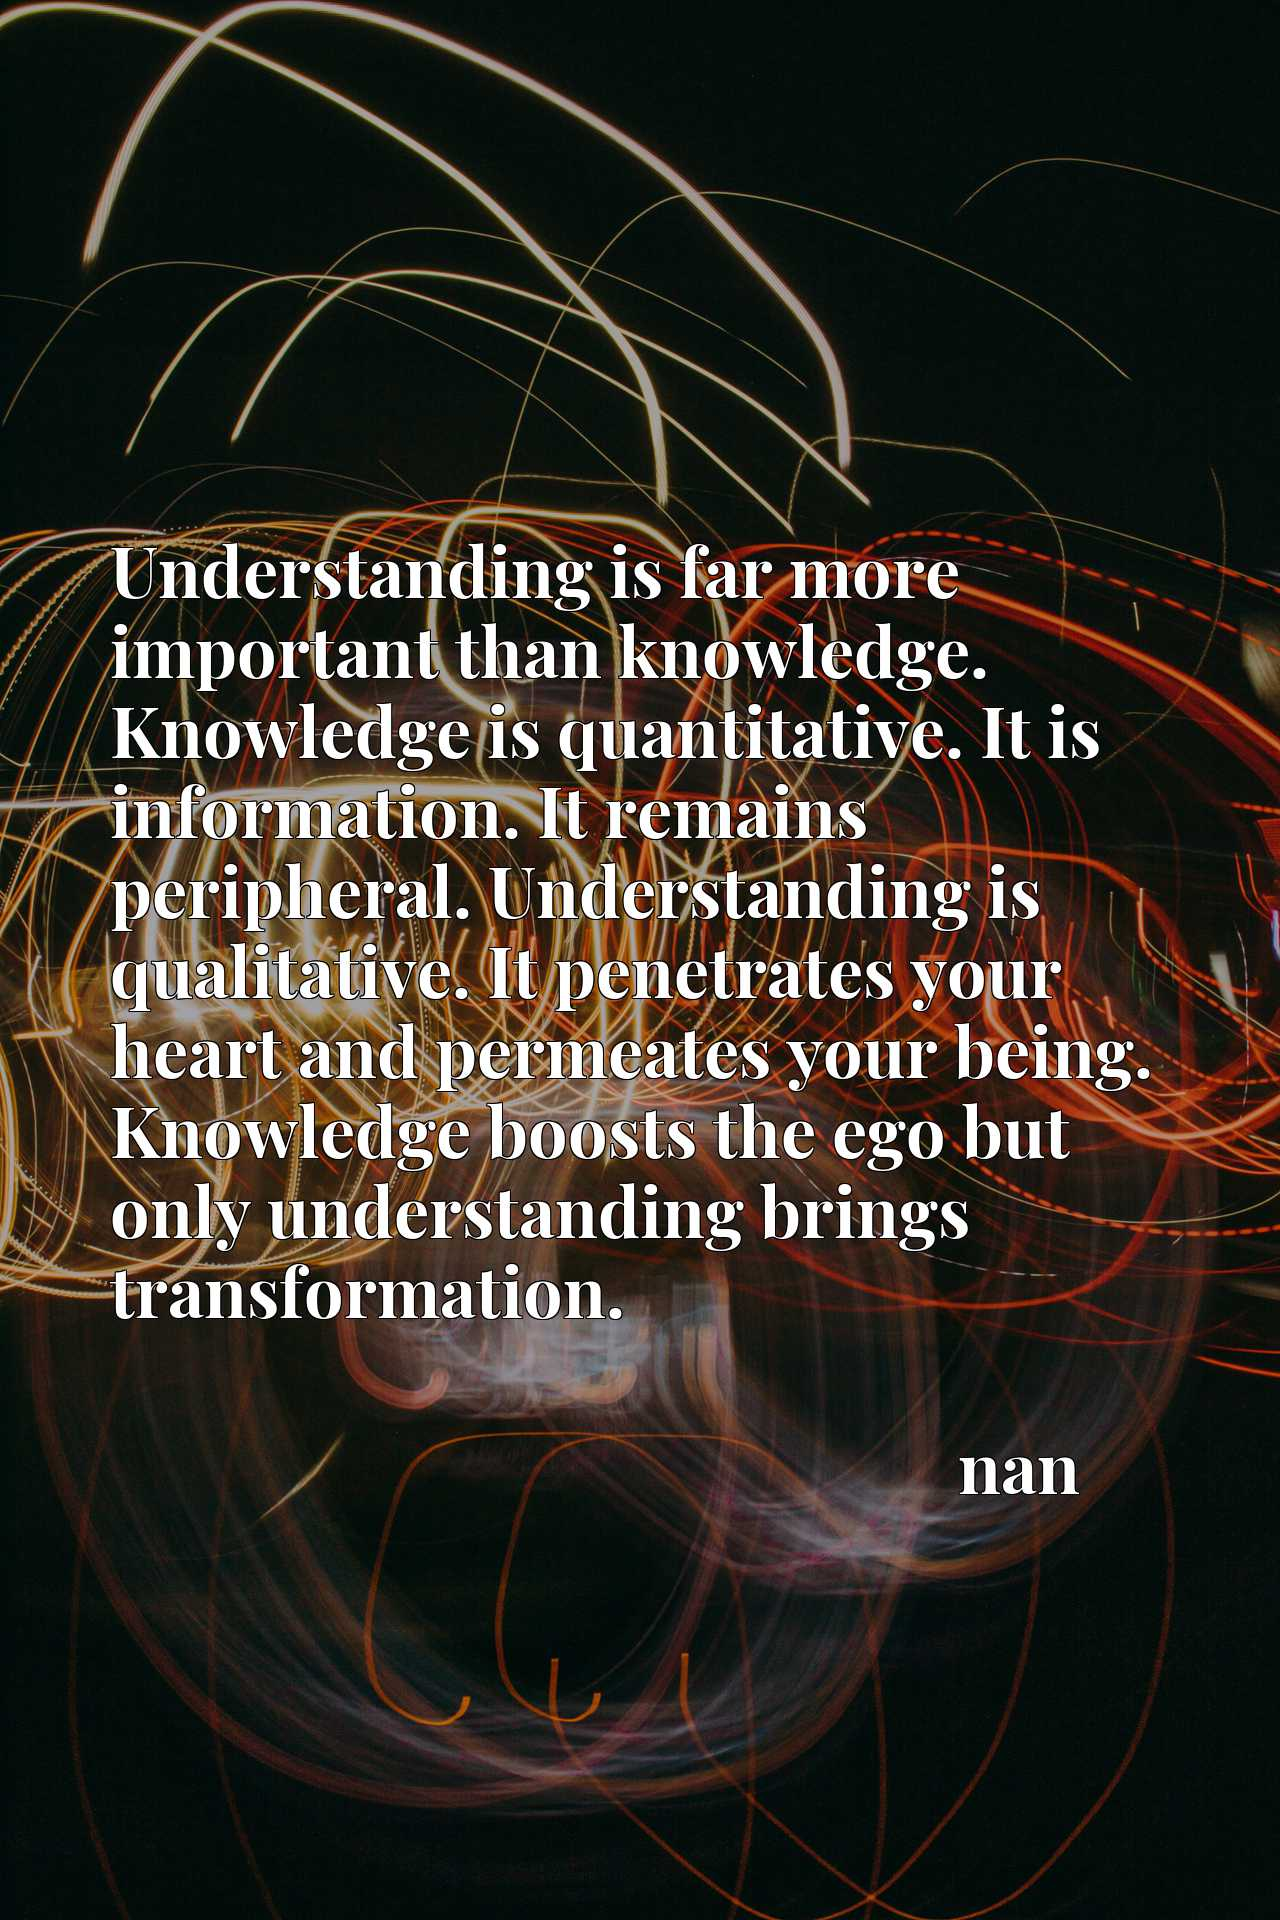 Understanding is far more important than knowledge. Knowledge is quantitative. It is information. It remains peripheral. Understanding is qualitative. It penetrates your heart and permeates your being. Knowledge boosts the ego but only understanding brings transformation.